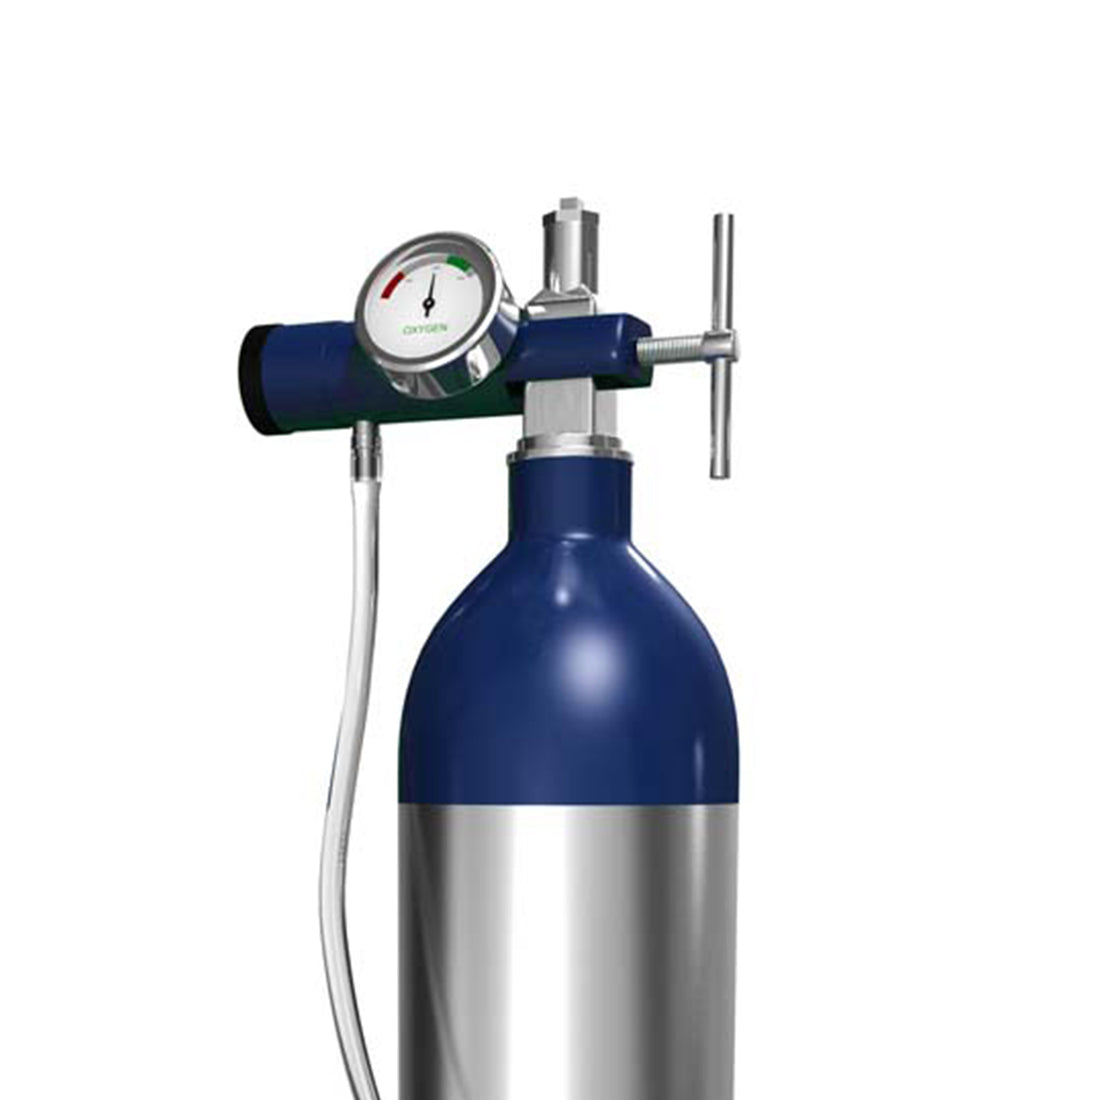 Calibration Gas - Propane - 0.6% C3H8/Air - 103DS